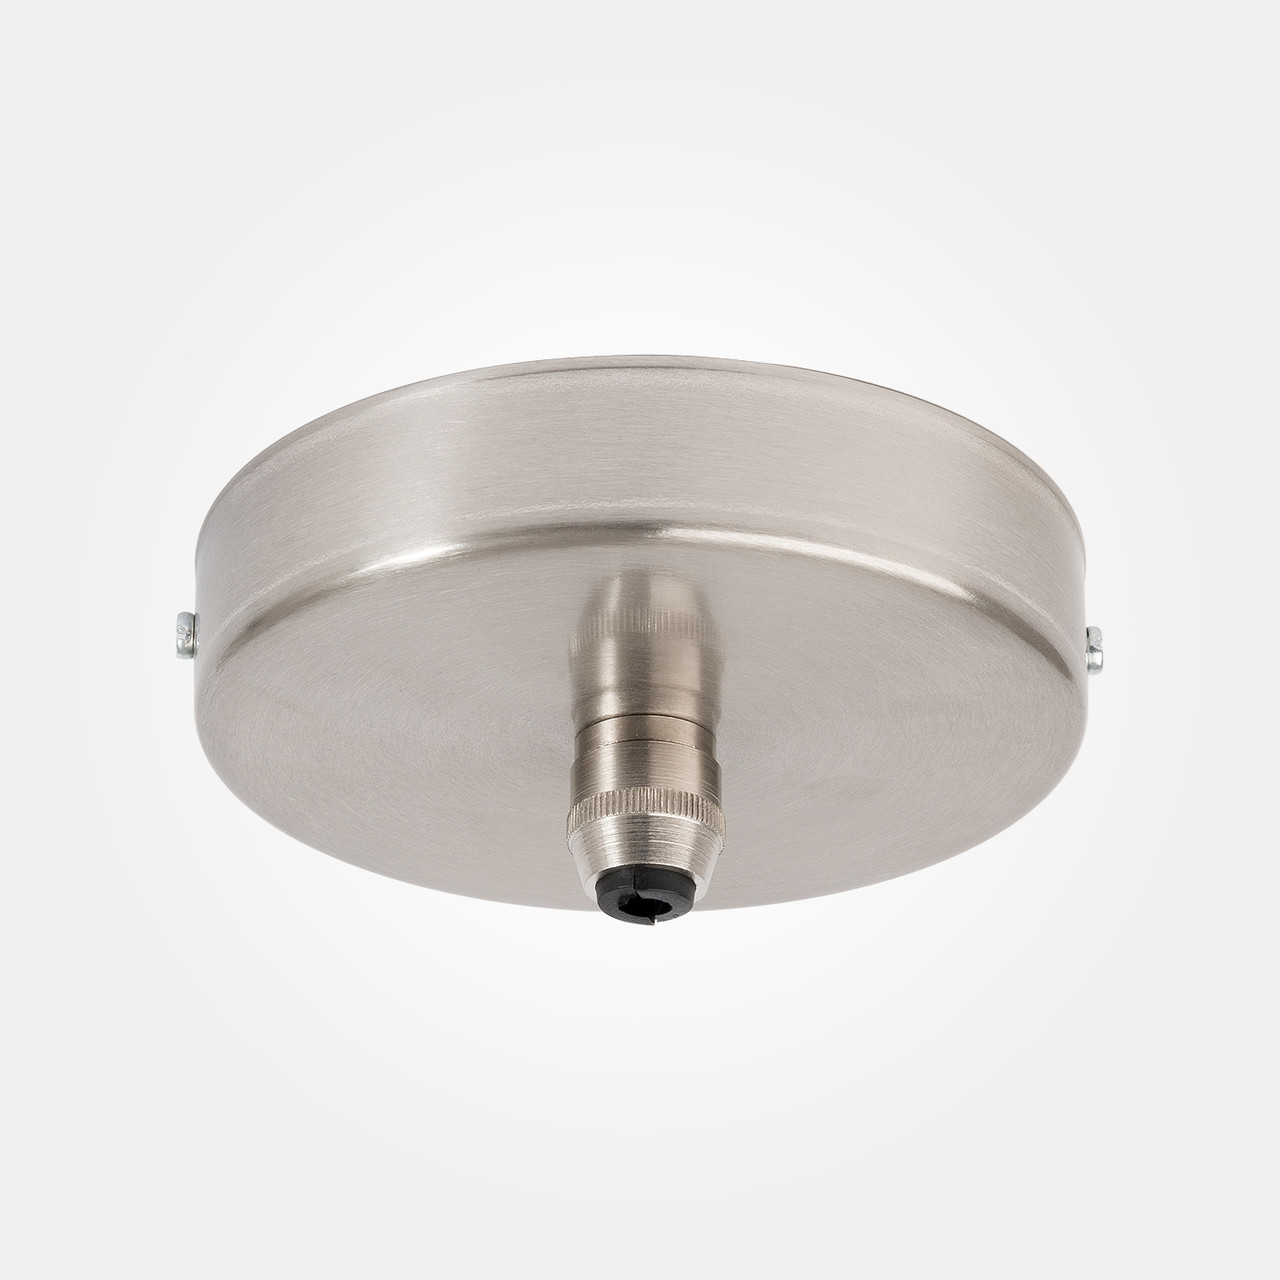 Domestic ceiling rose nickel artifact lighting domestic ceiling rose nickel image 1 aloadofball Images